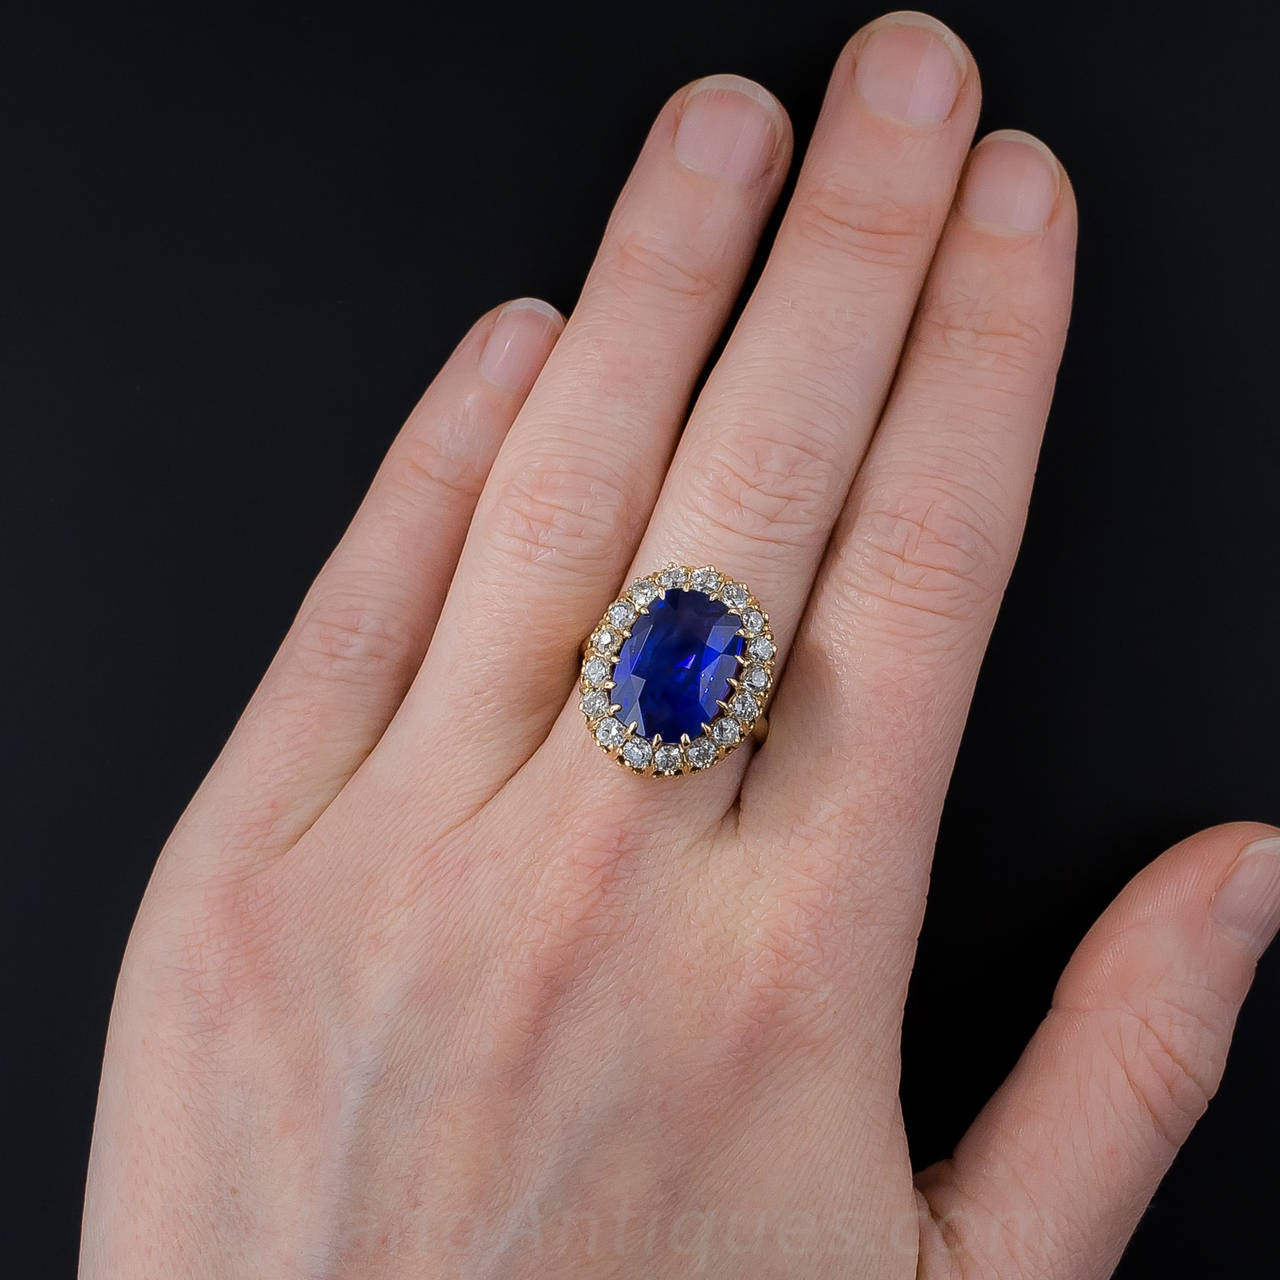 jewellers from elizabeth carat lanka blue gemstone sri sapphire ceylon products natural